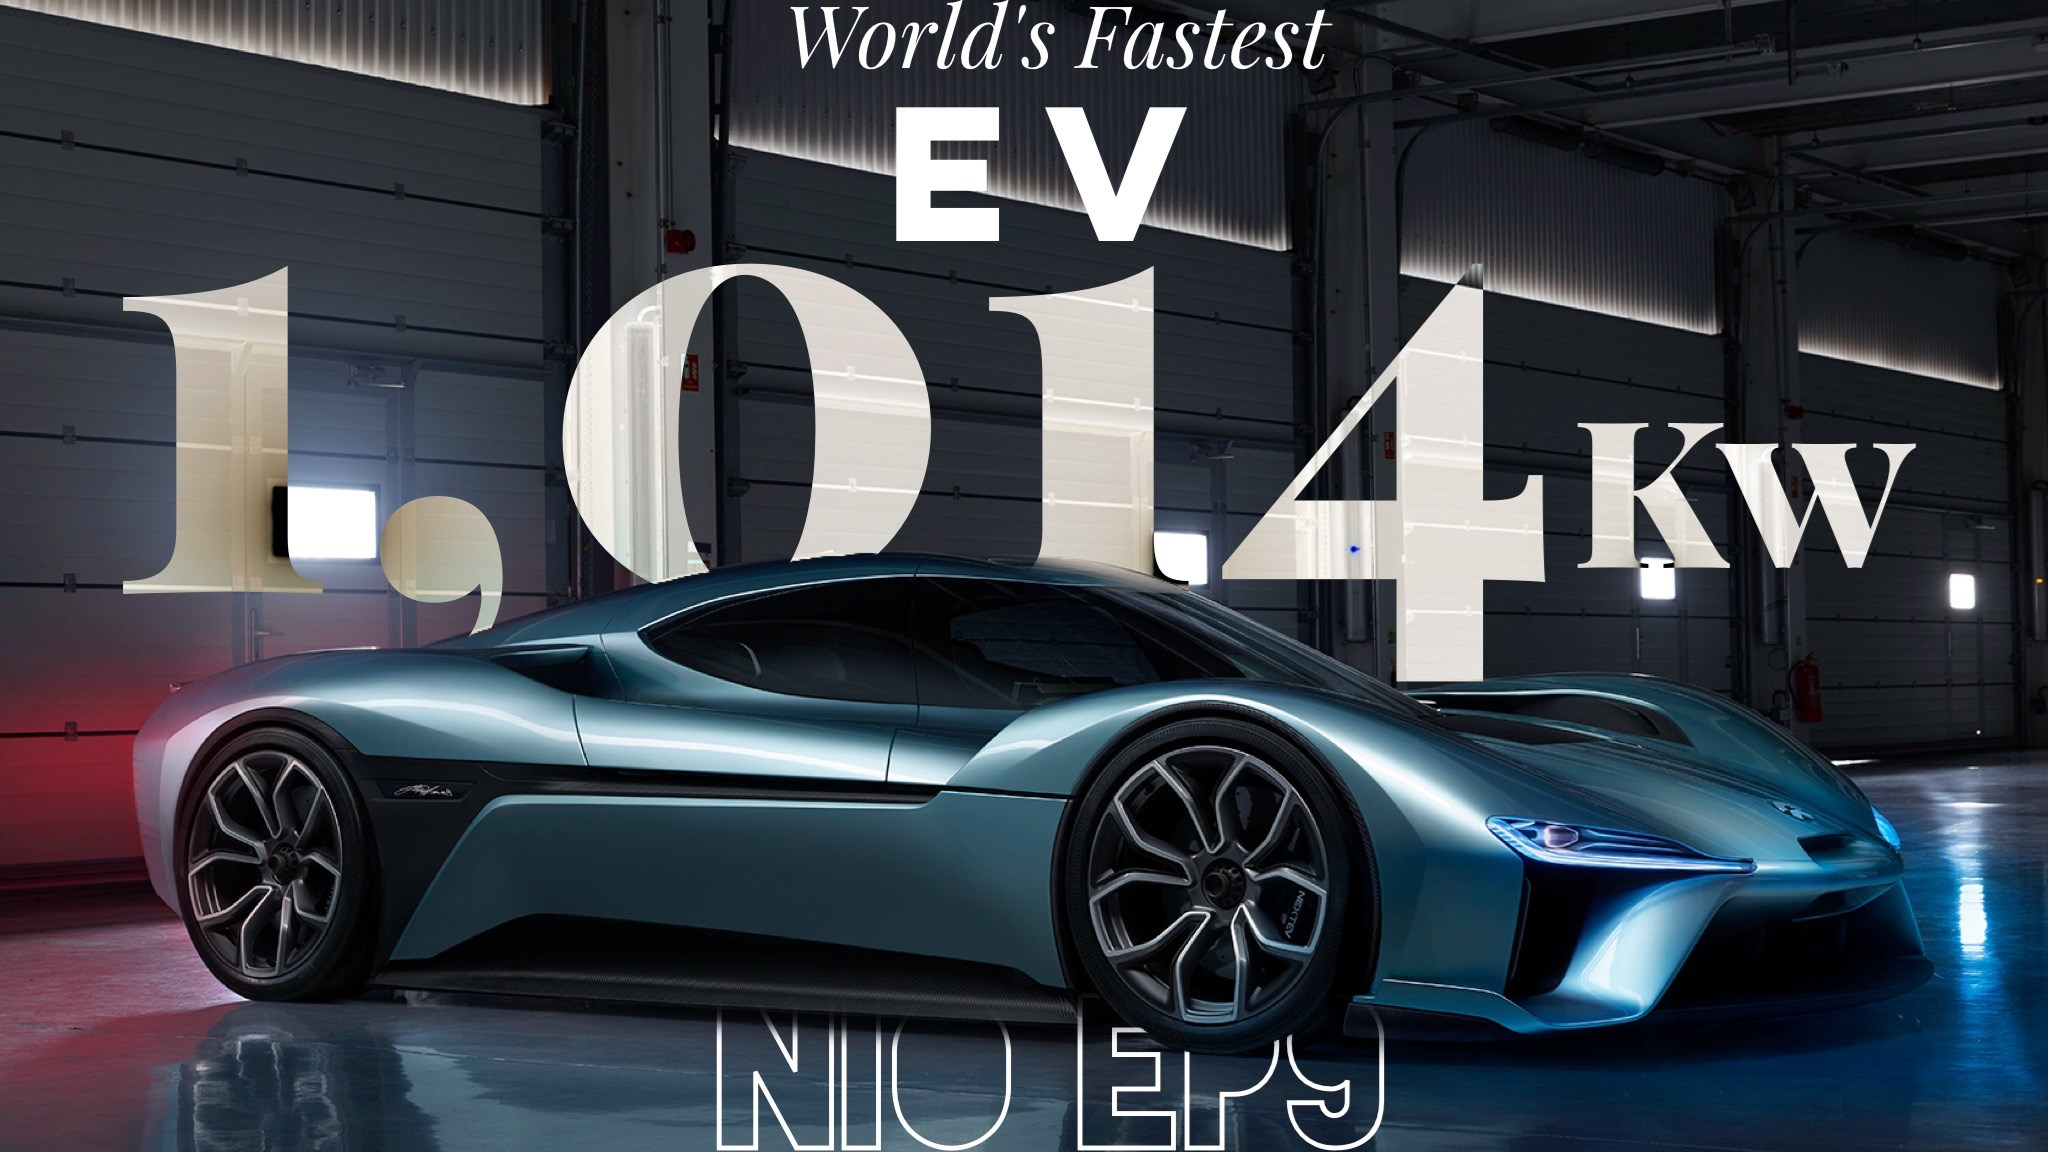 Here's The 1,014kW Nio EP9 Supercar Scorching The Nurburgring